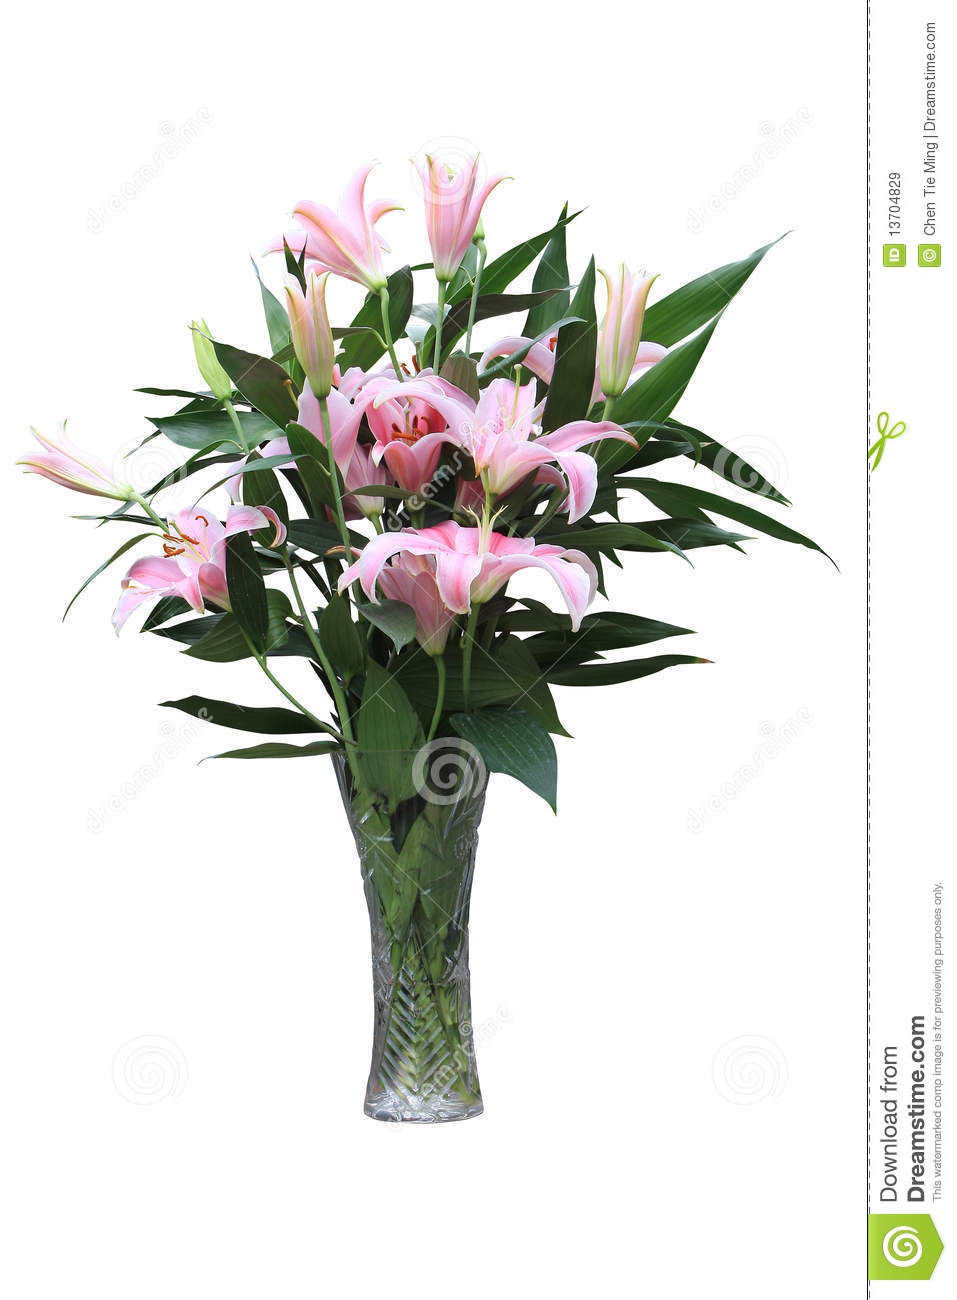 Lily Stock Image Image Of Decoration Lucky Flower 13704829